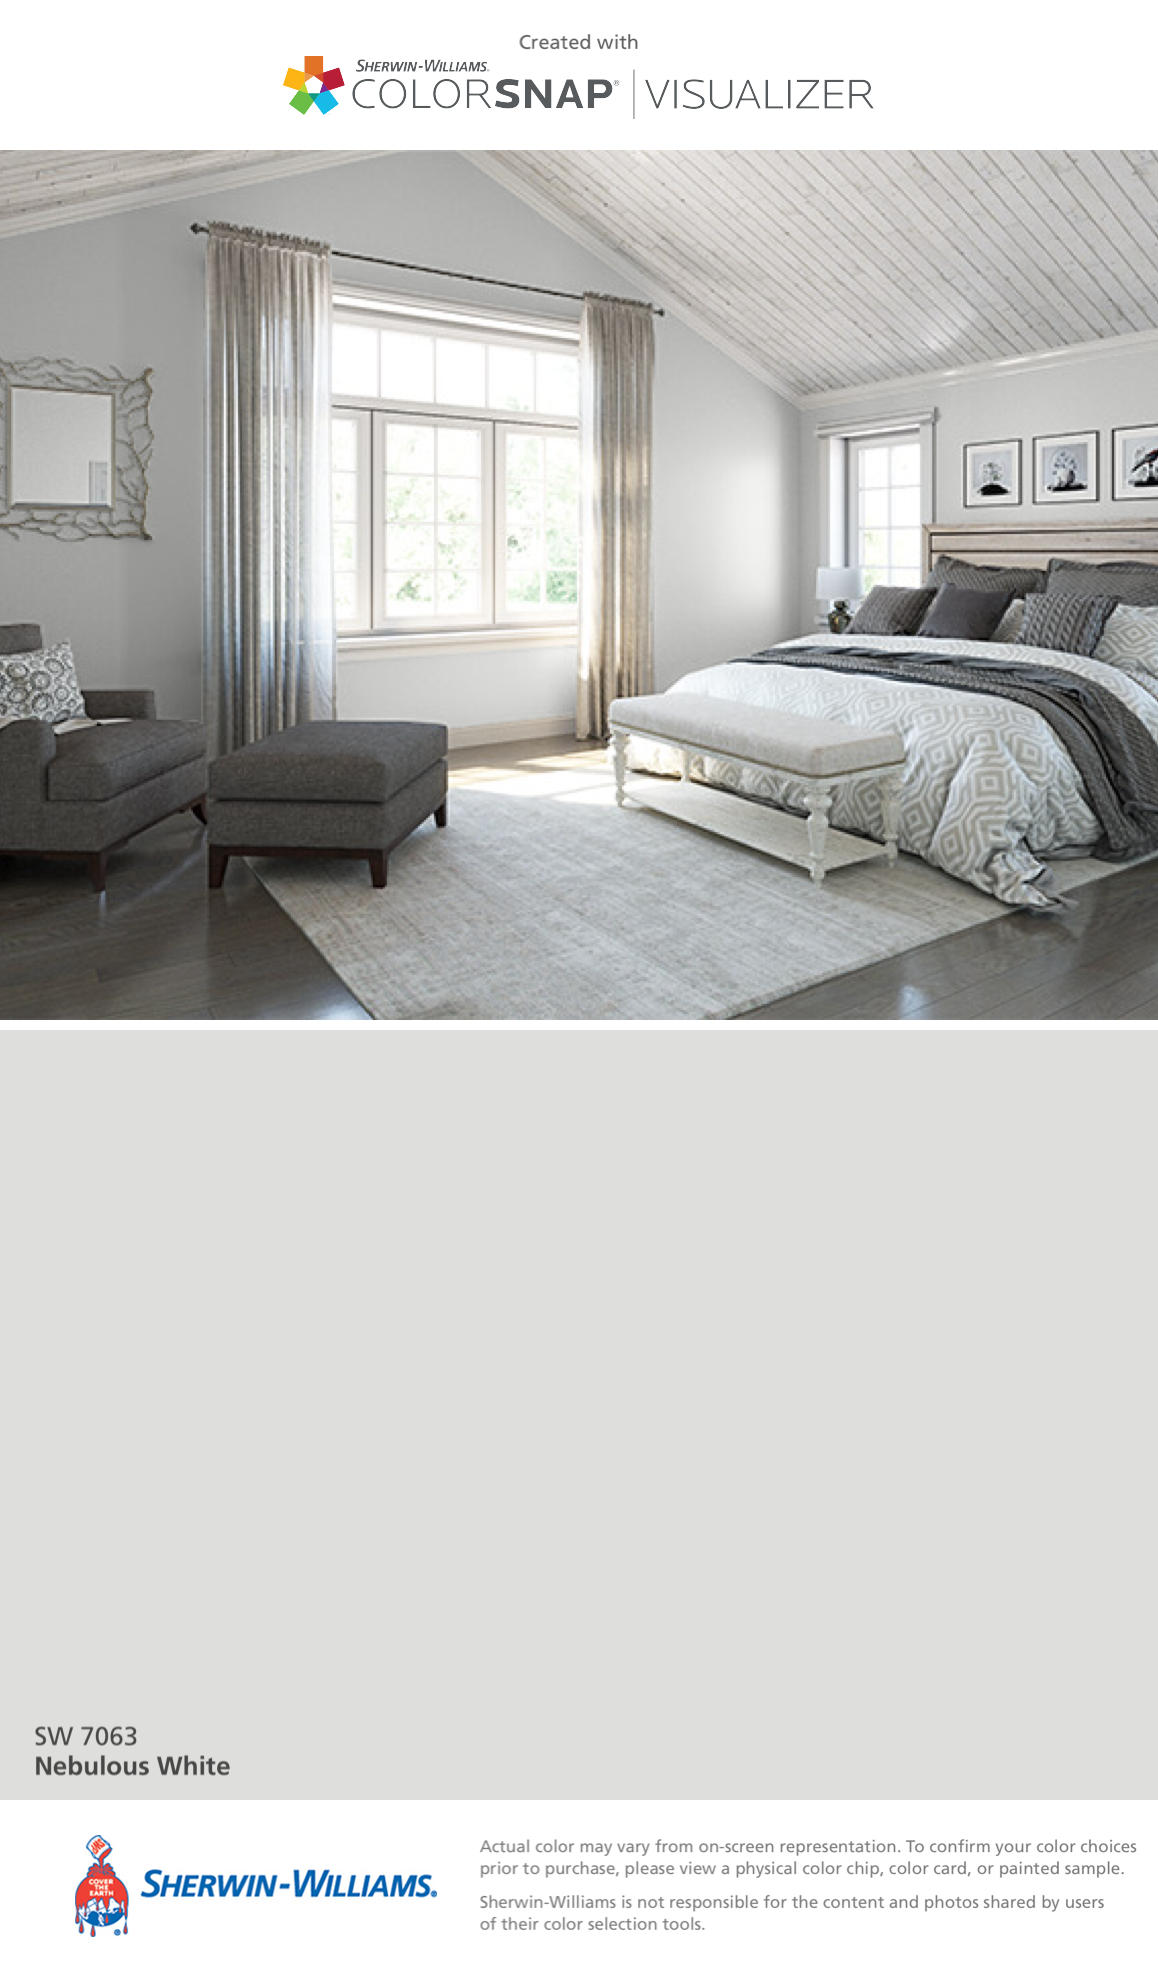 Sherwin williams paint colors sherwin williams 6249 storm cloud - I Found This Color With Colorsnap Visualizer For Iphone By Sherwin Williams Nebulous